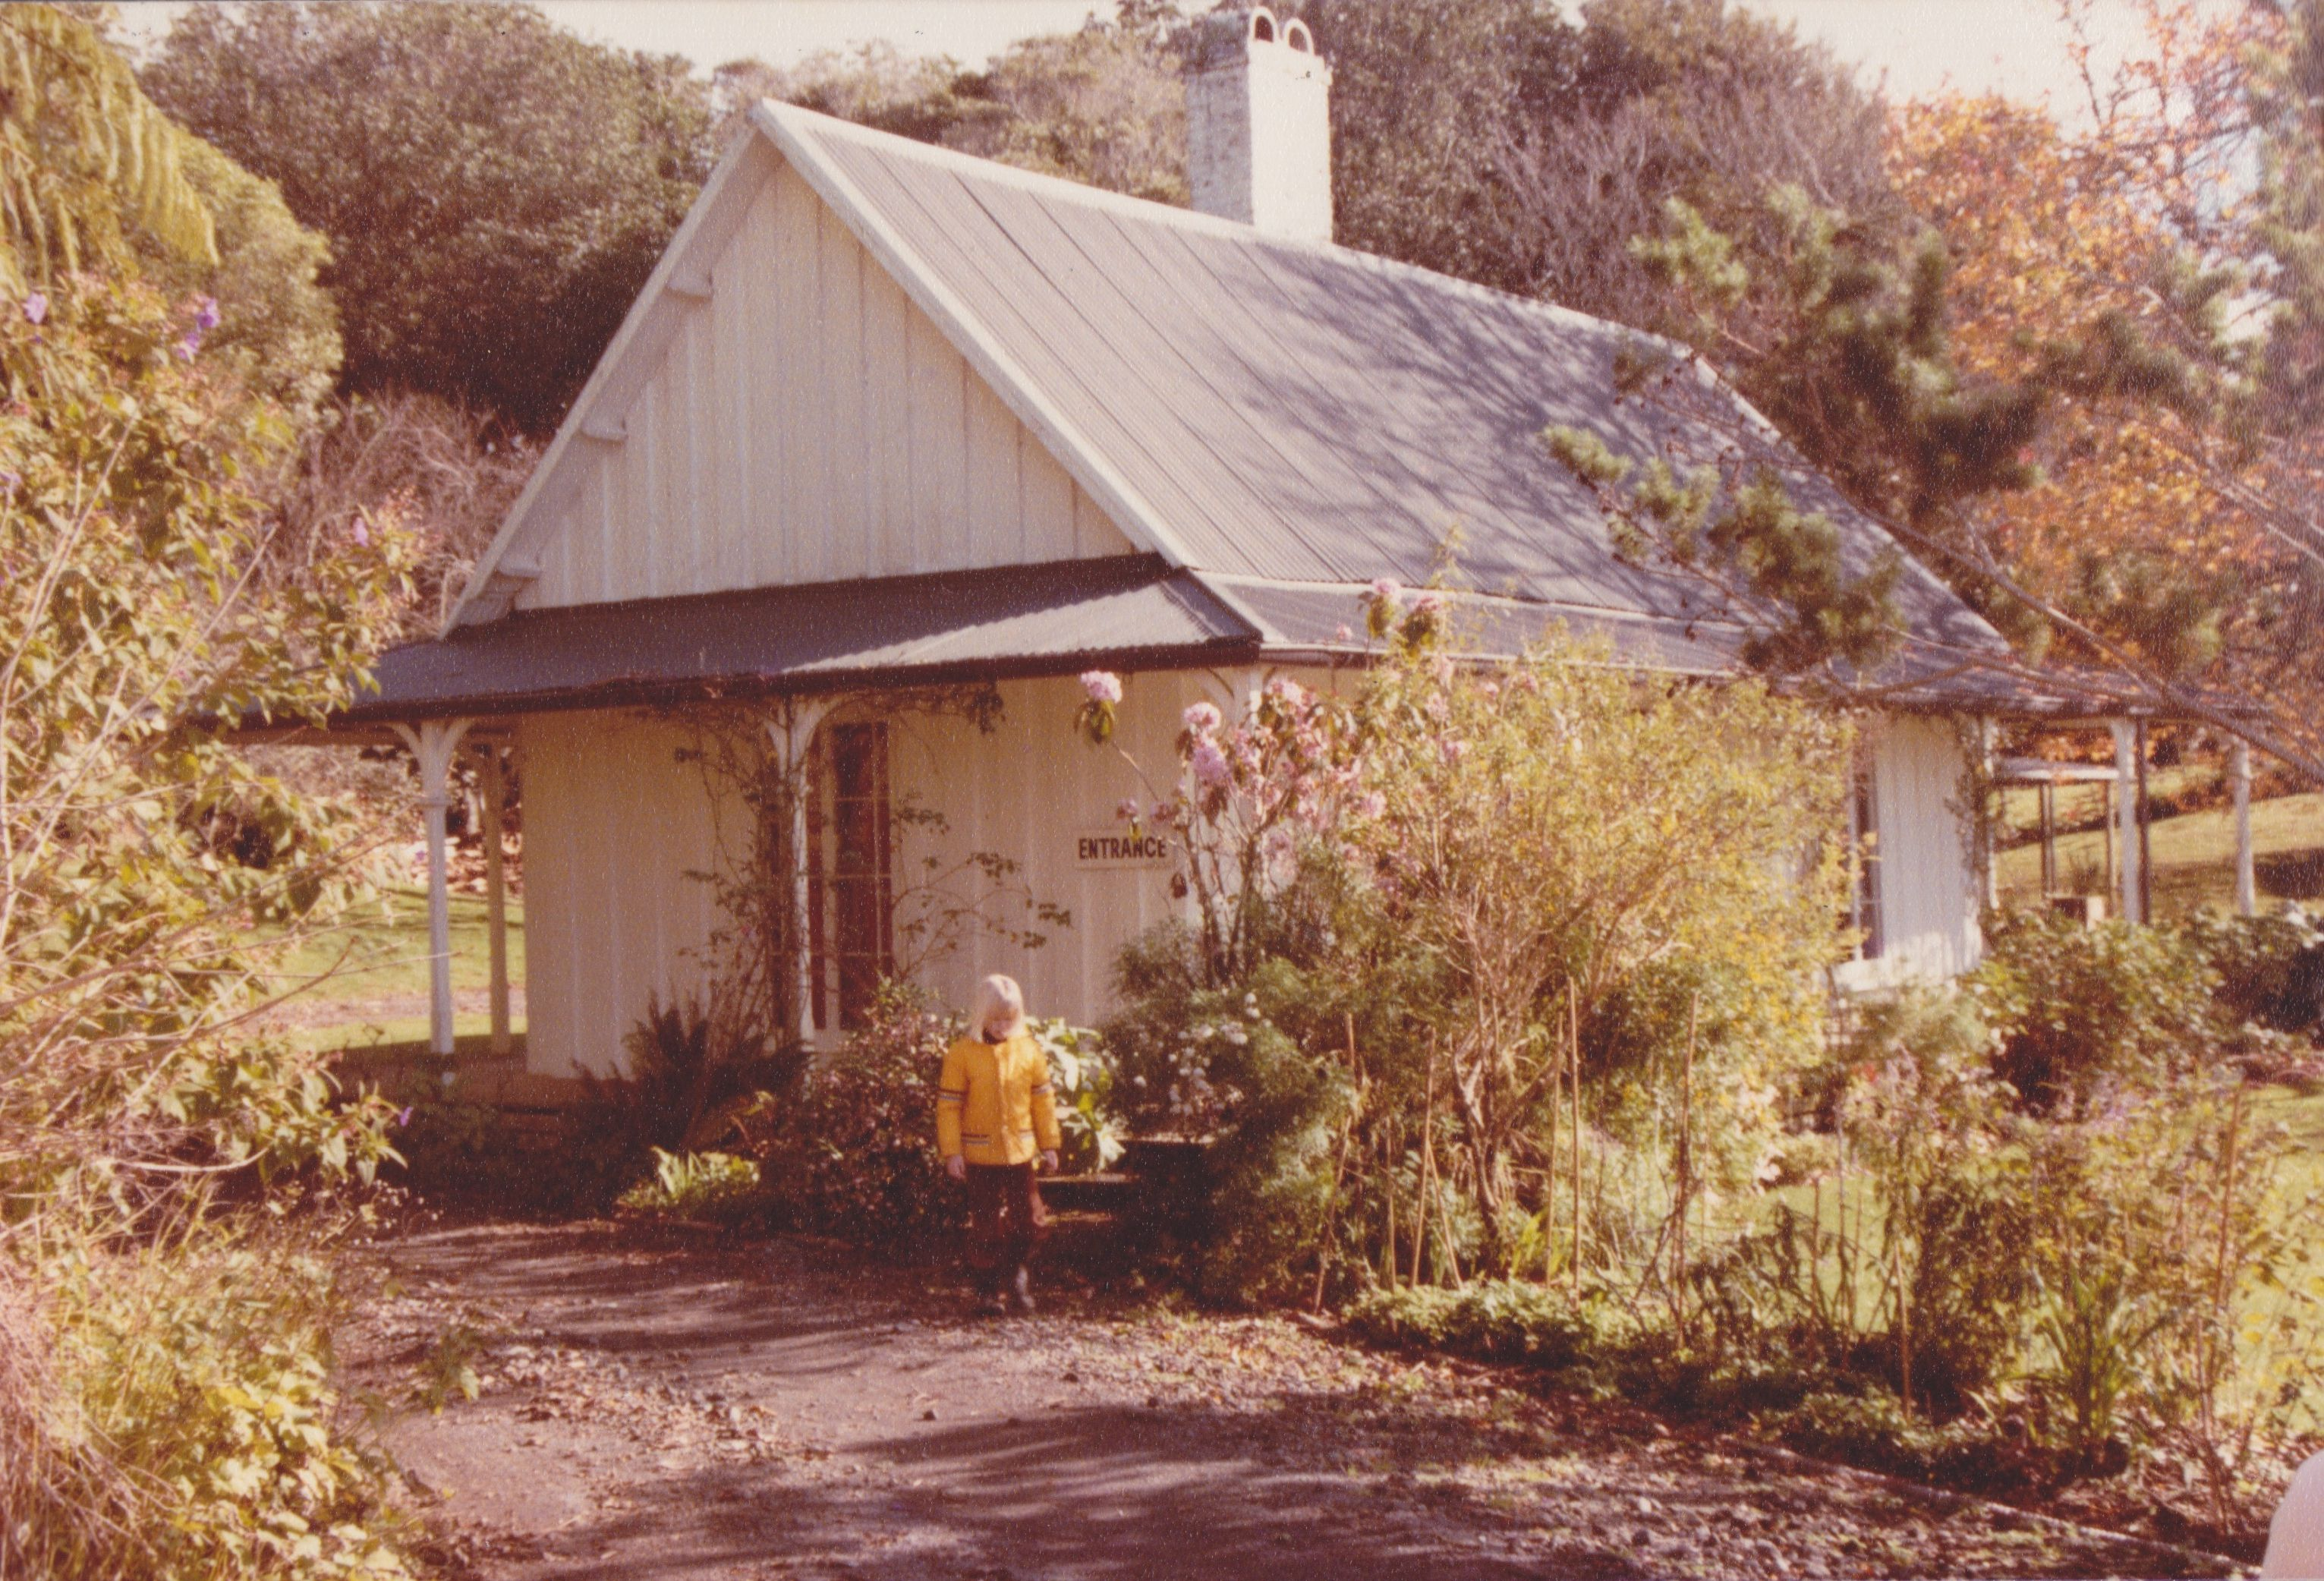 Hurworth Cottage near New Plymouth in 1985. Beautiful